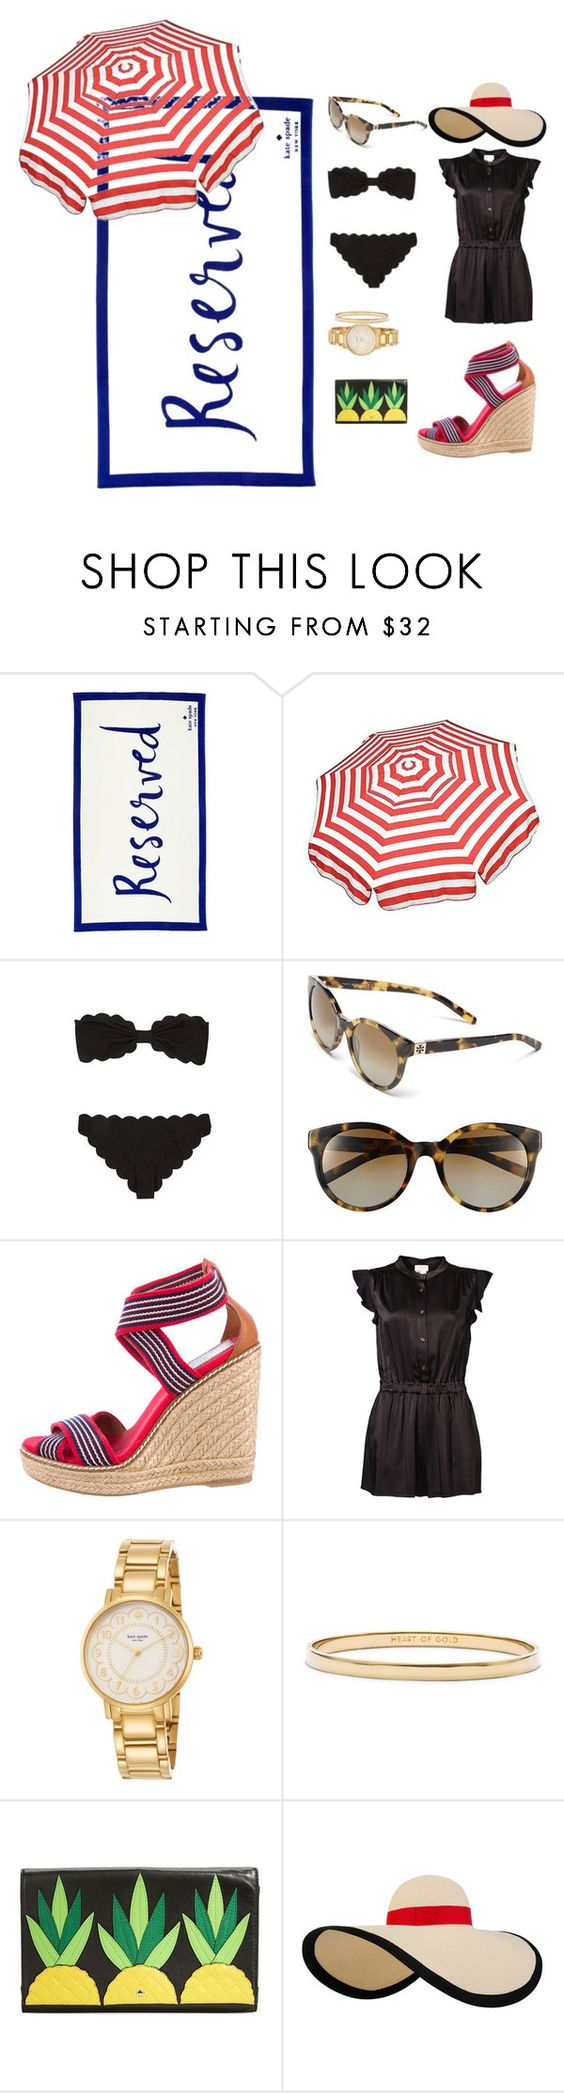 """Beach to Town {southern prep}"" by holly0099 ❤ liked on Polyvore featuring Kate Spade, Parasol, Marysia Swim, Tory Burch and Eugenia Kim"